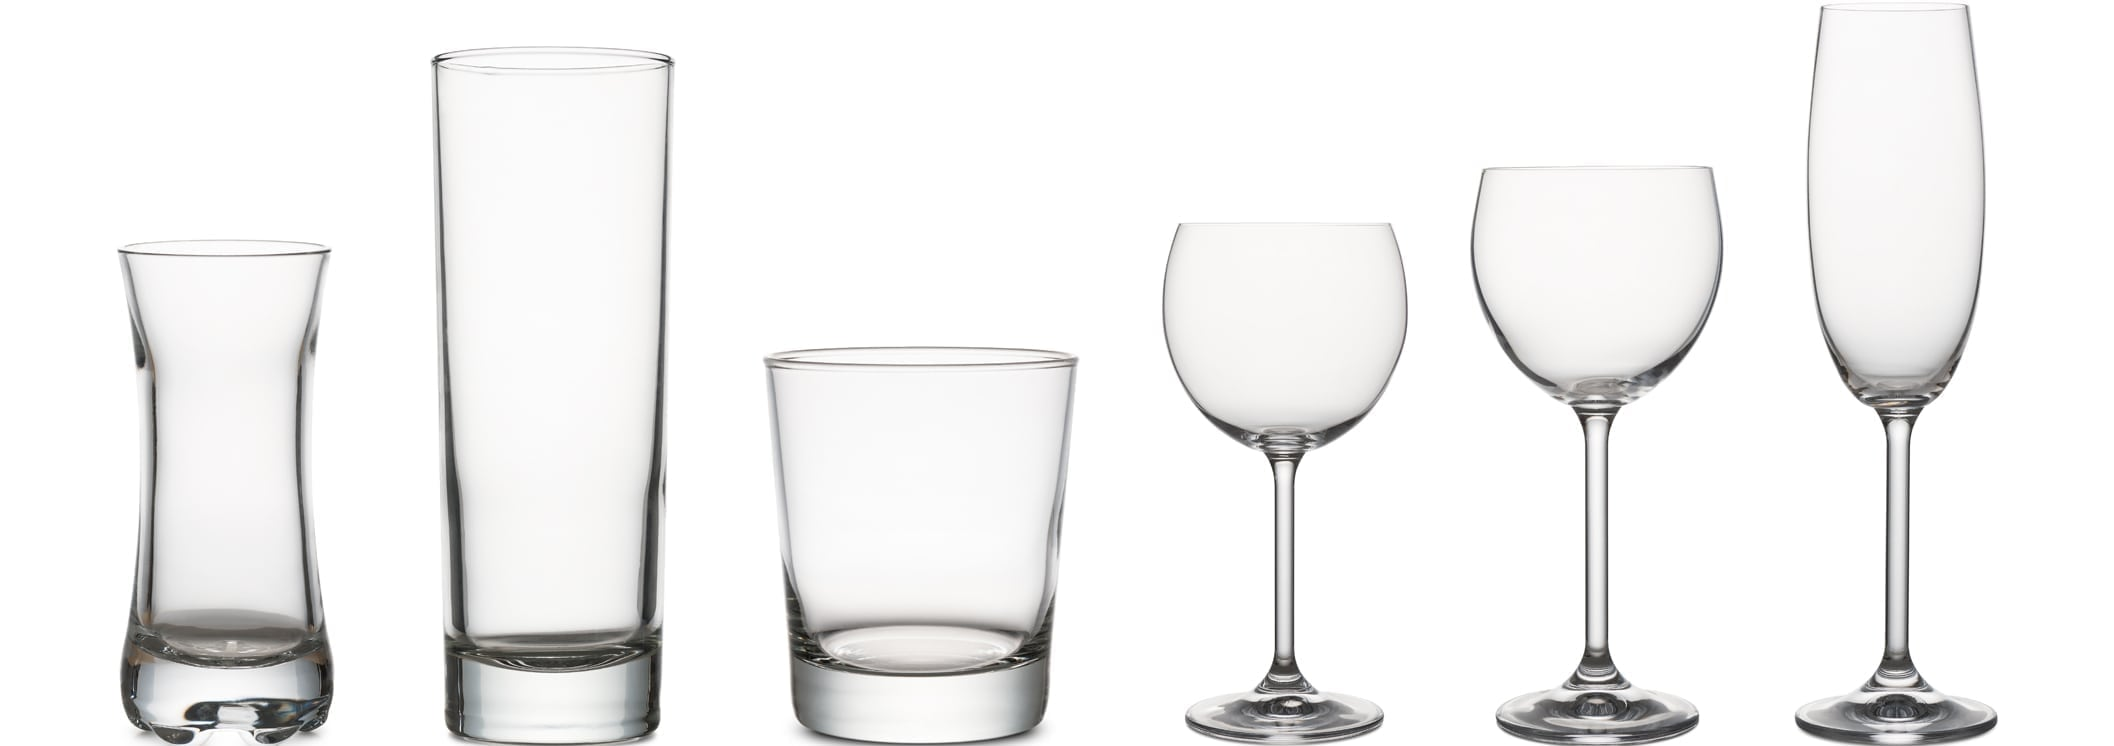 variety of classical glass for wine and water empty, on white background